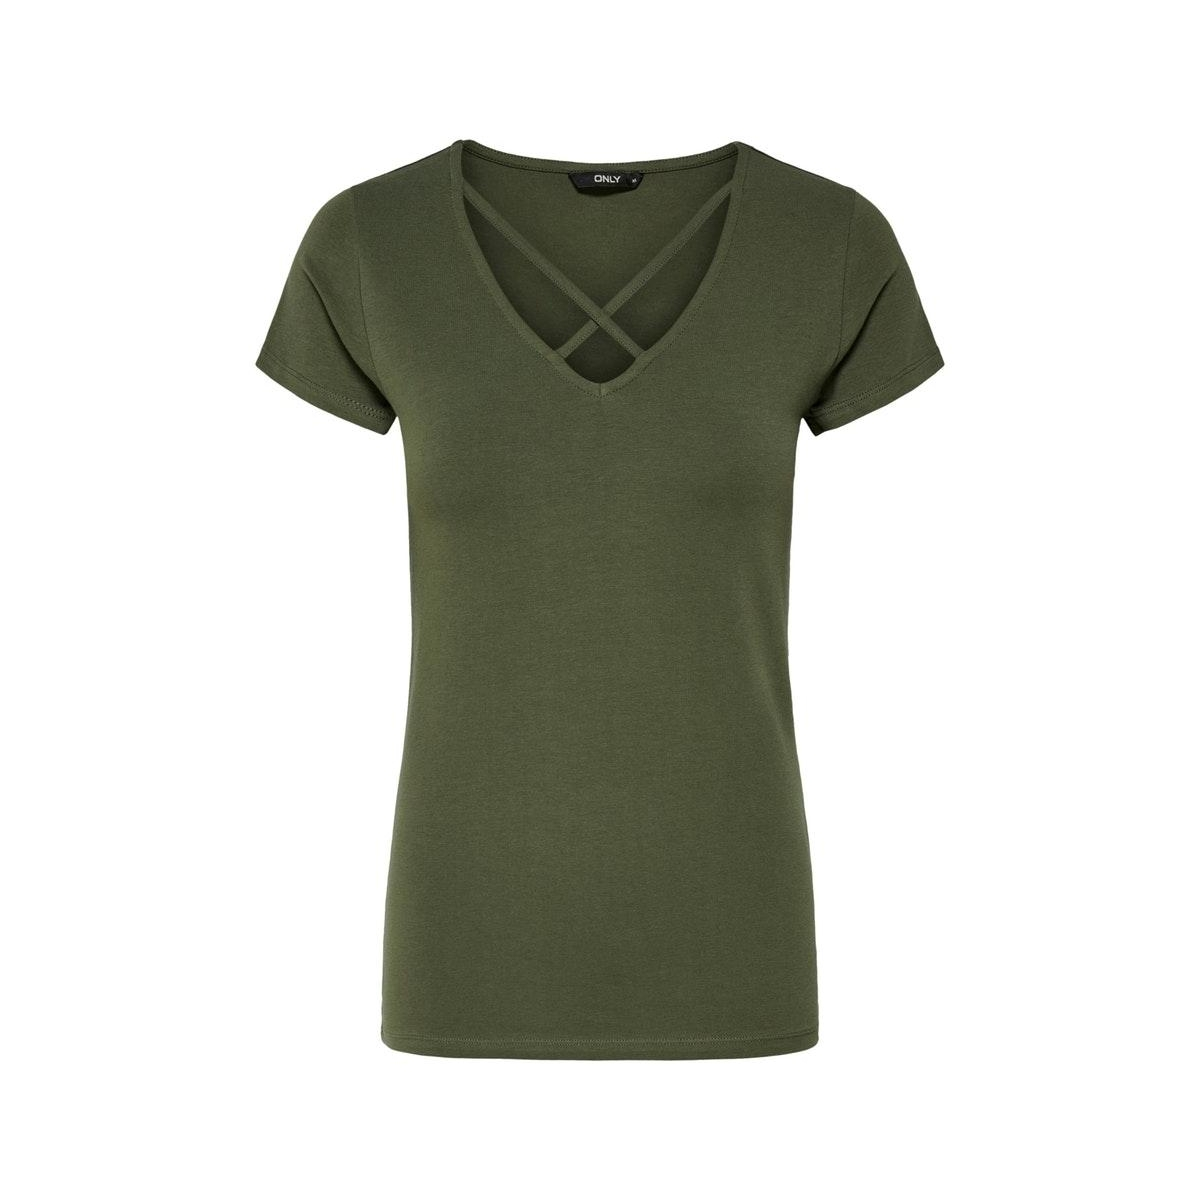 onllive love s/s lace up front top 15182823 only t-shirt kalamata